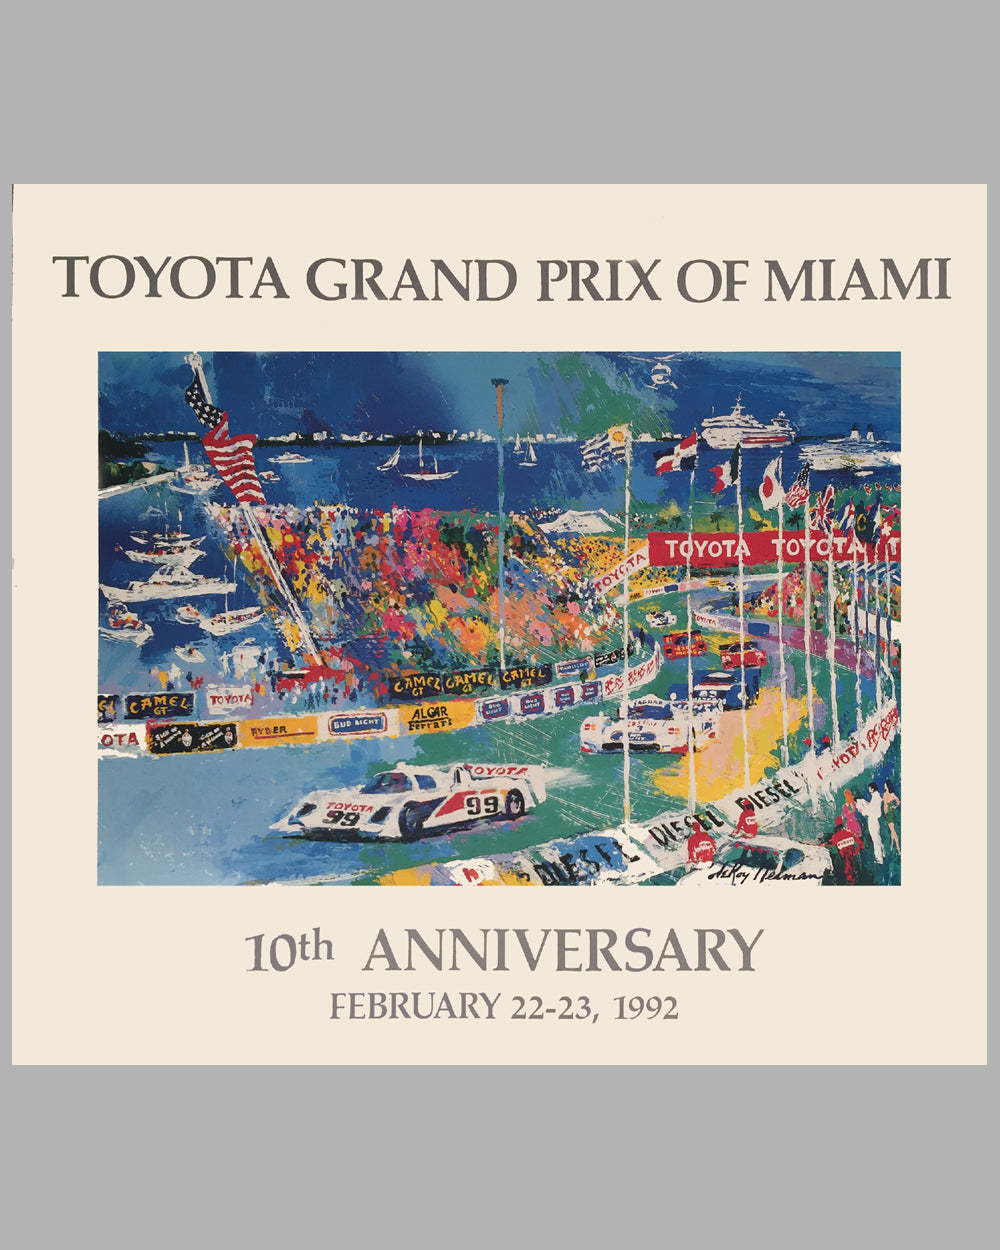 Miami Grand Prix 10th Anniversary poster by Le Roy Neiman